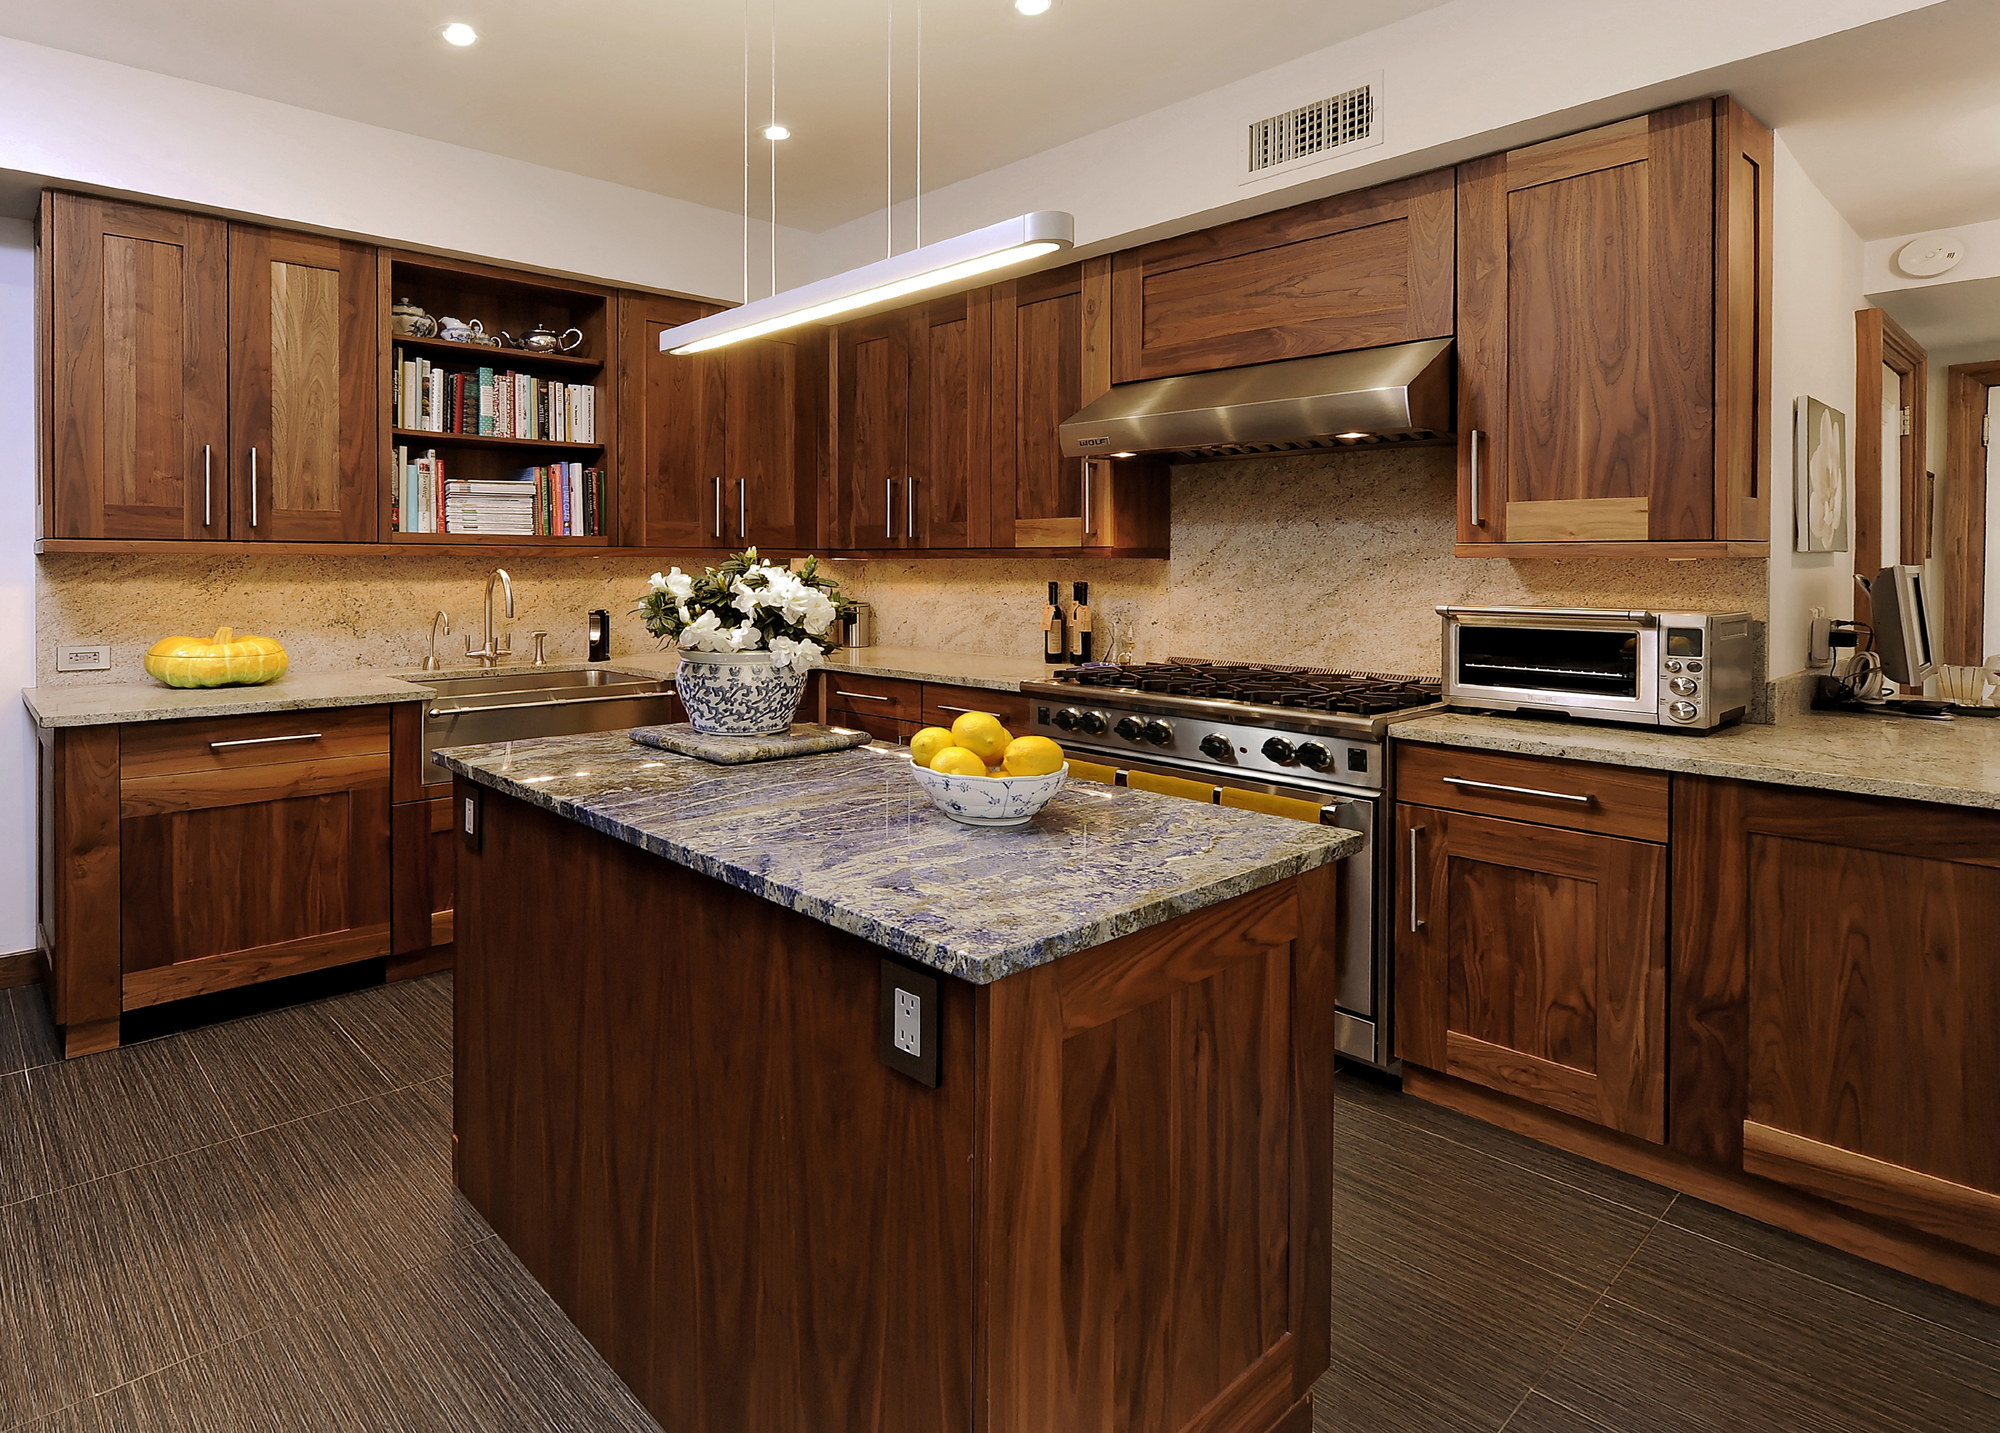 Northwest Washington DC Condominium Renovation BOWA